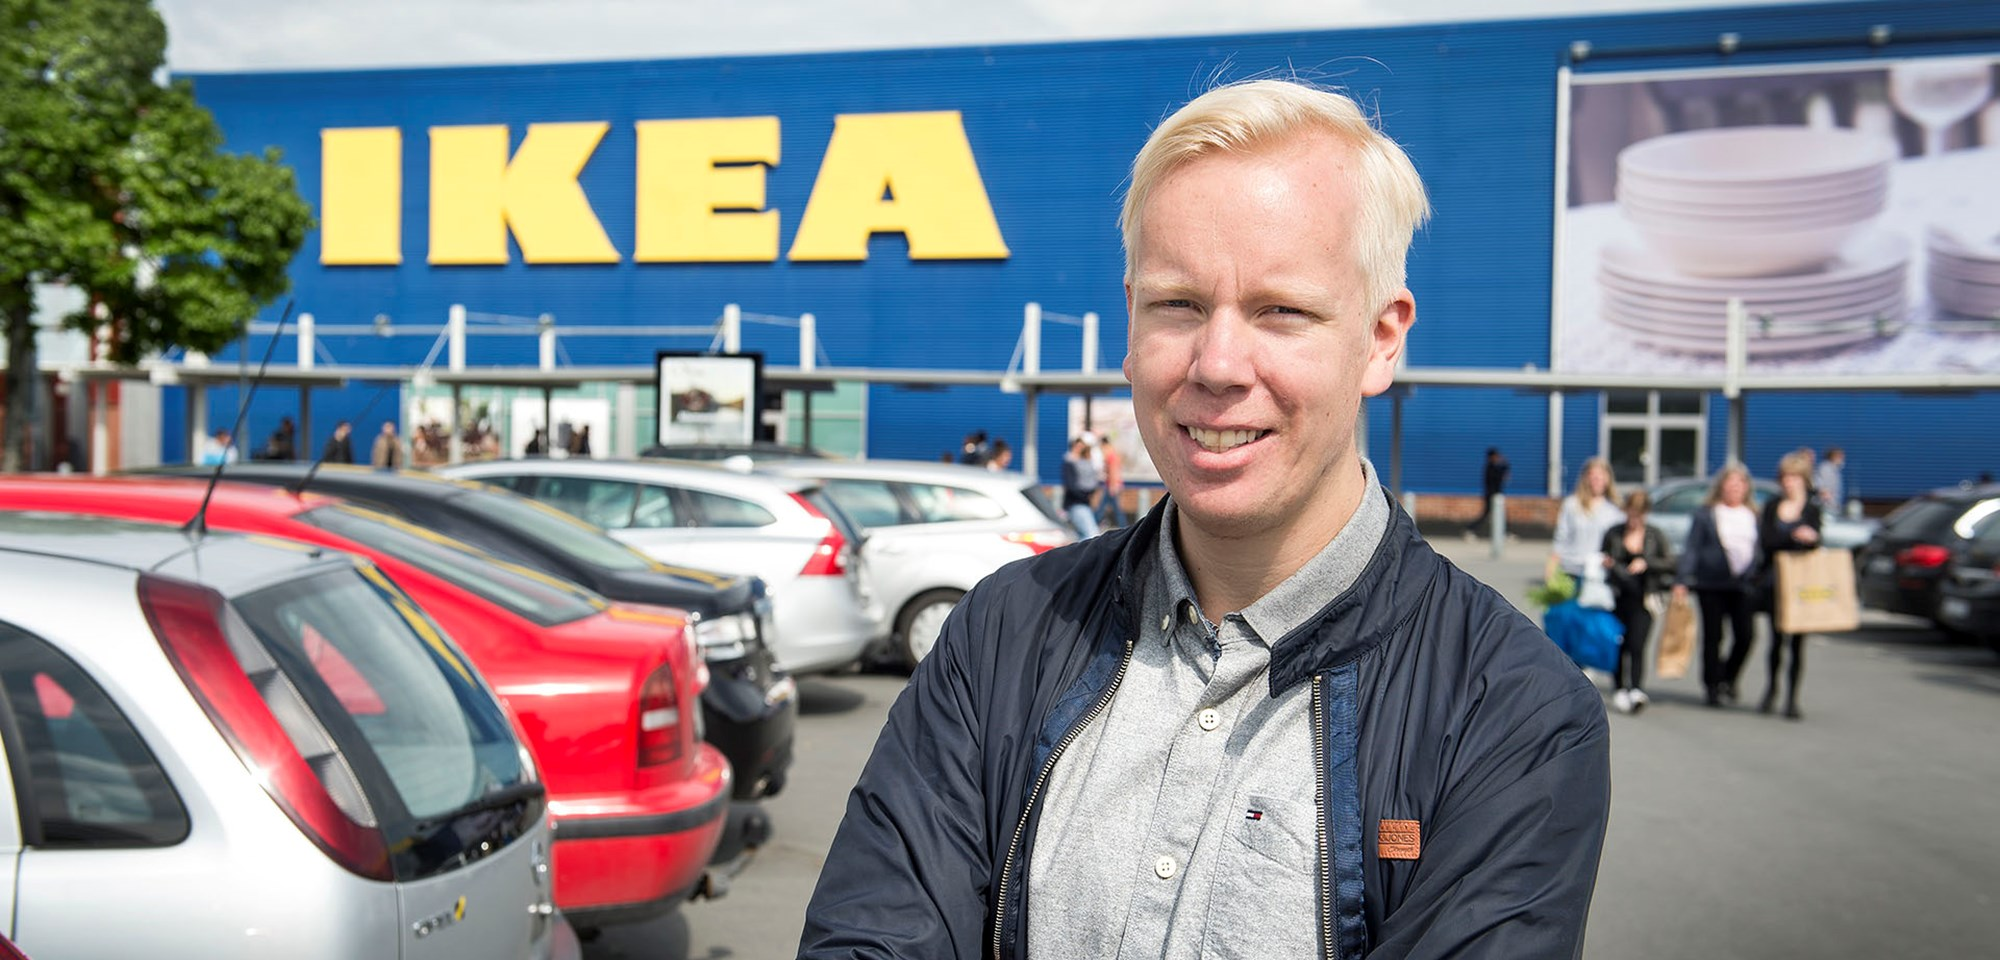 stories_oscar_ikea_1920.jpg